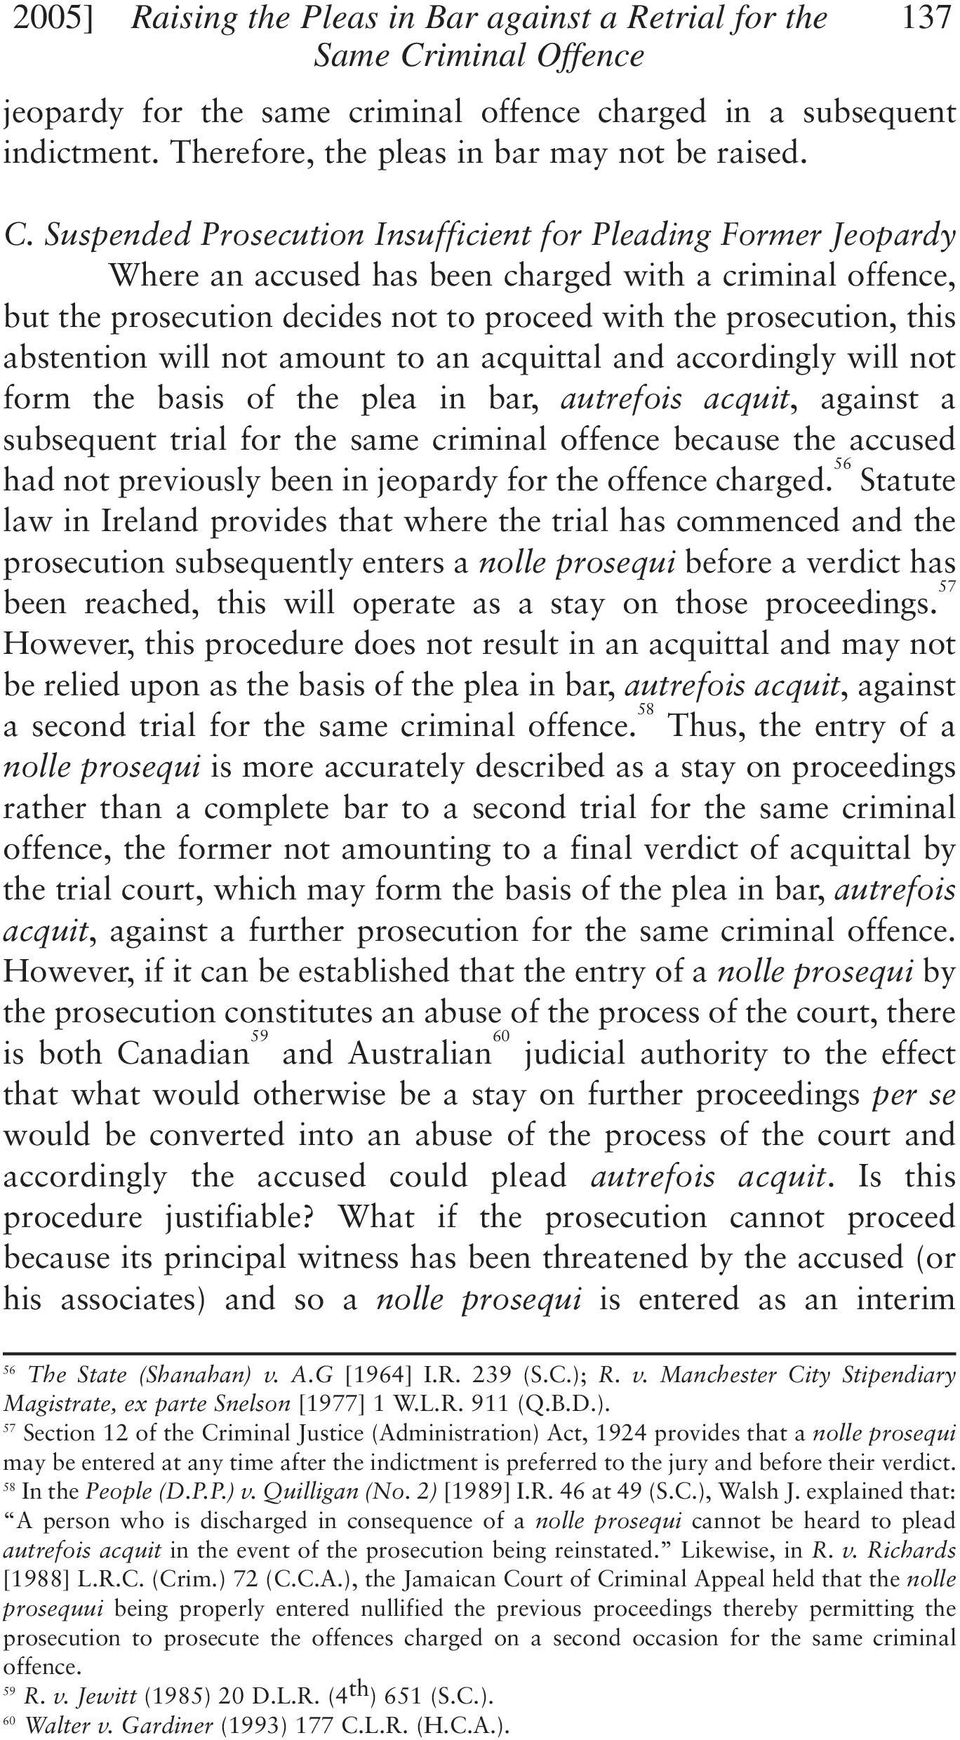 Suspended Prosecution Insufficient for Pleading Former Jeopardy Where an accused has been charged with a criminal offence, but the prosecution decides not to proceed with the prosecution, this